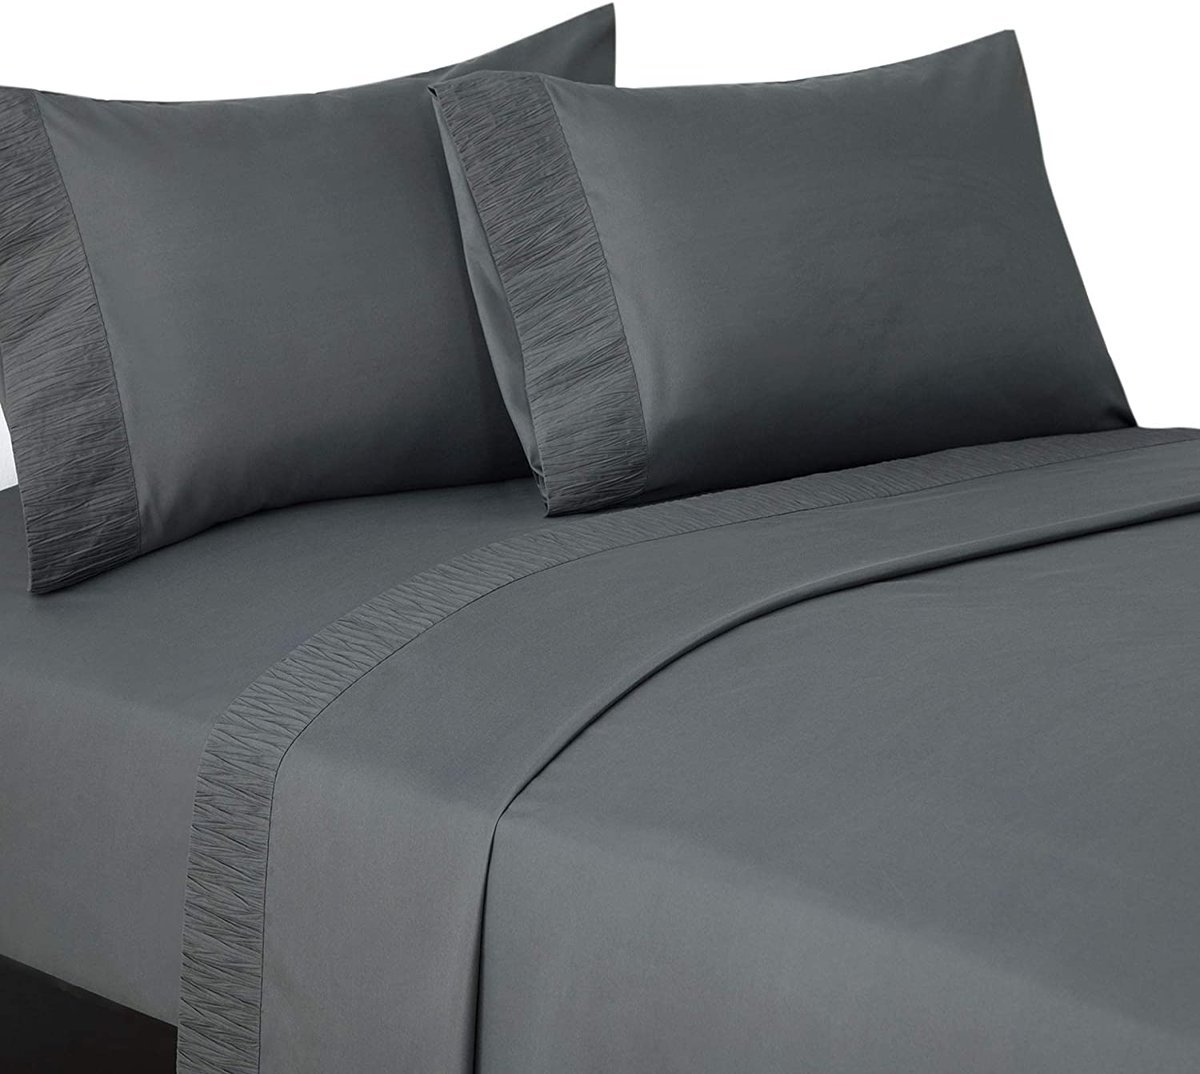 Bedsure Queen Bed Sheets Set  Only $18.69!